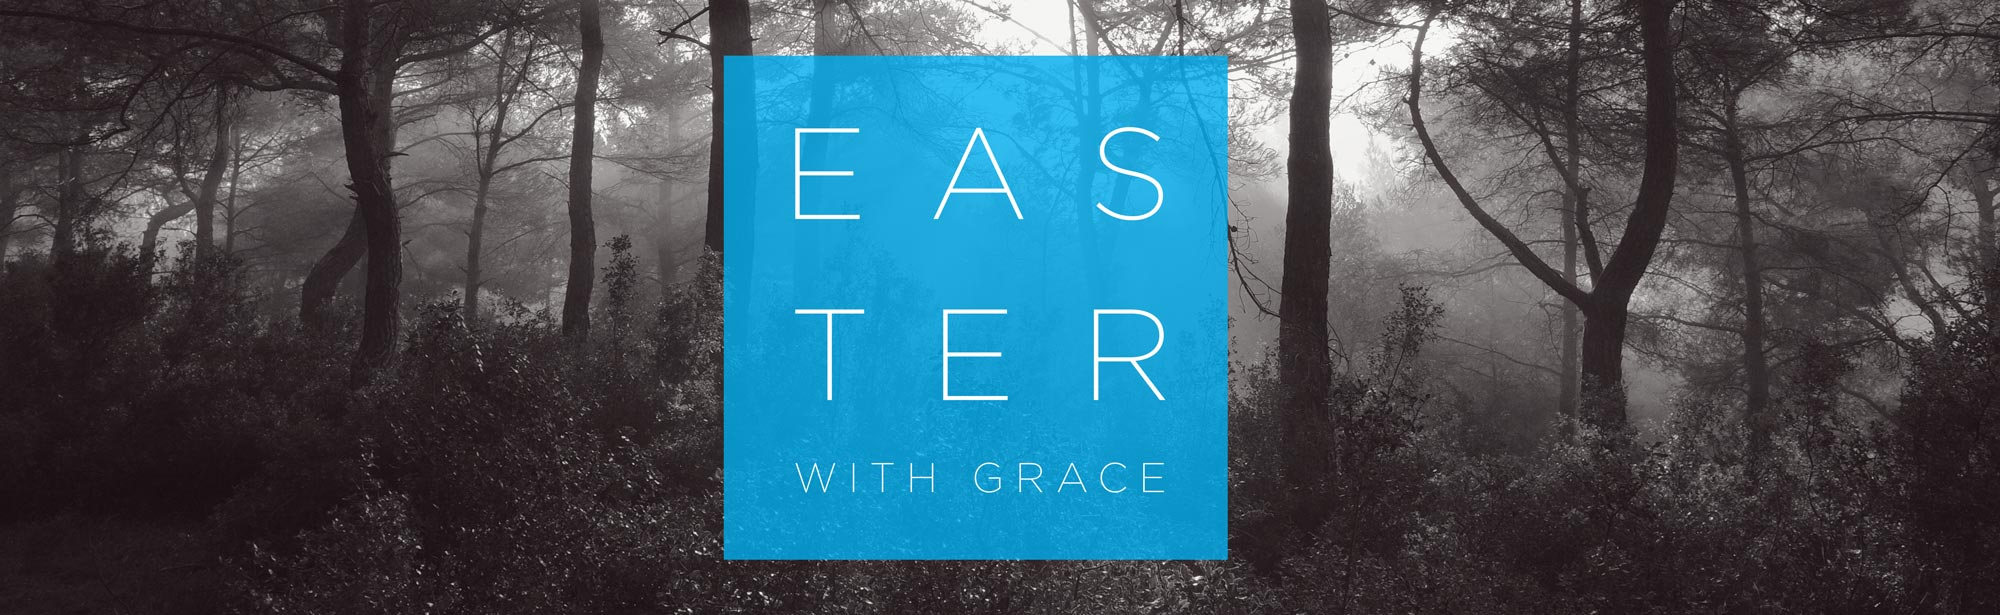 Easter with Grace 2016 - Grace Community Church